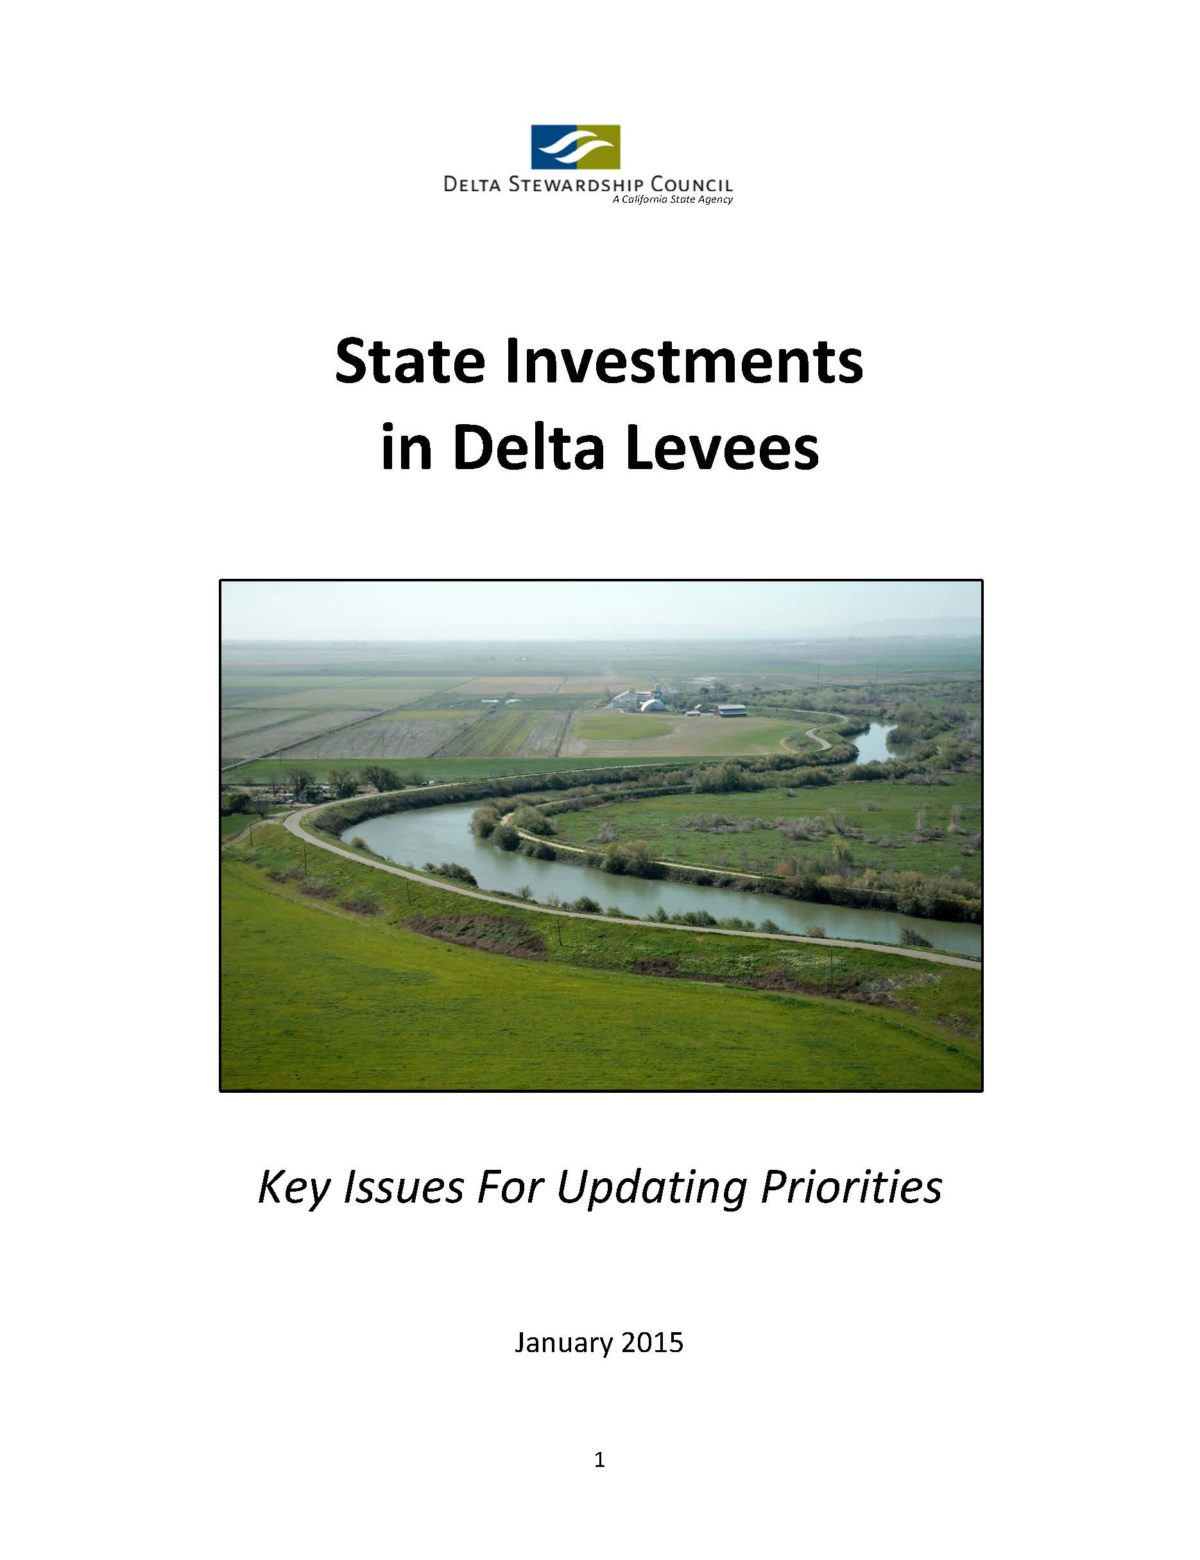 State Investments in Delta Levees